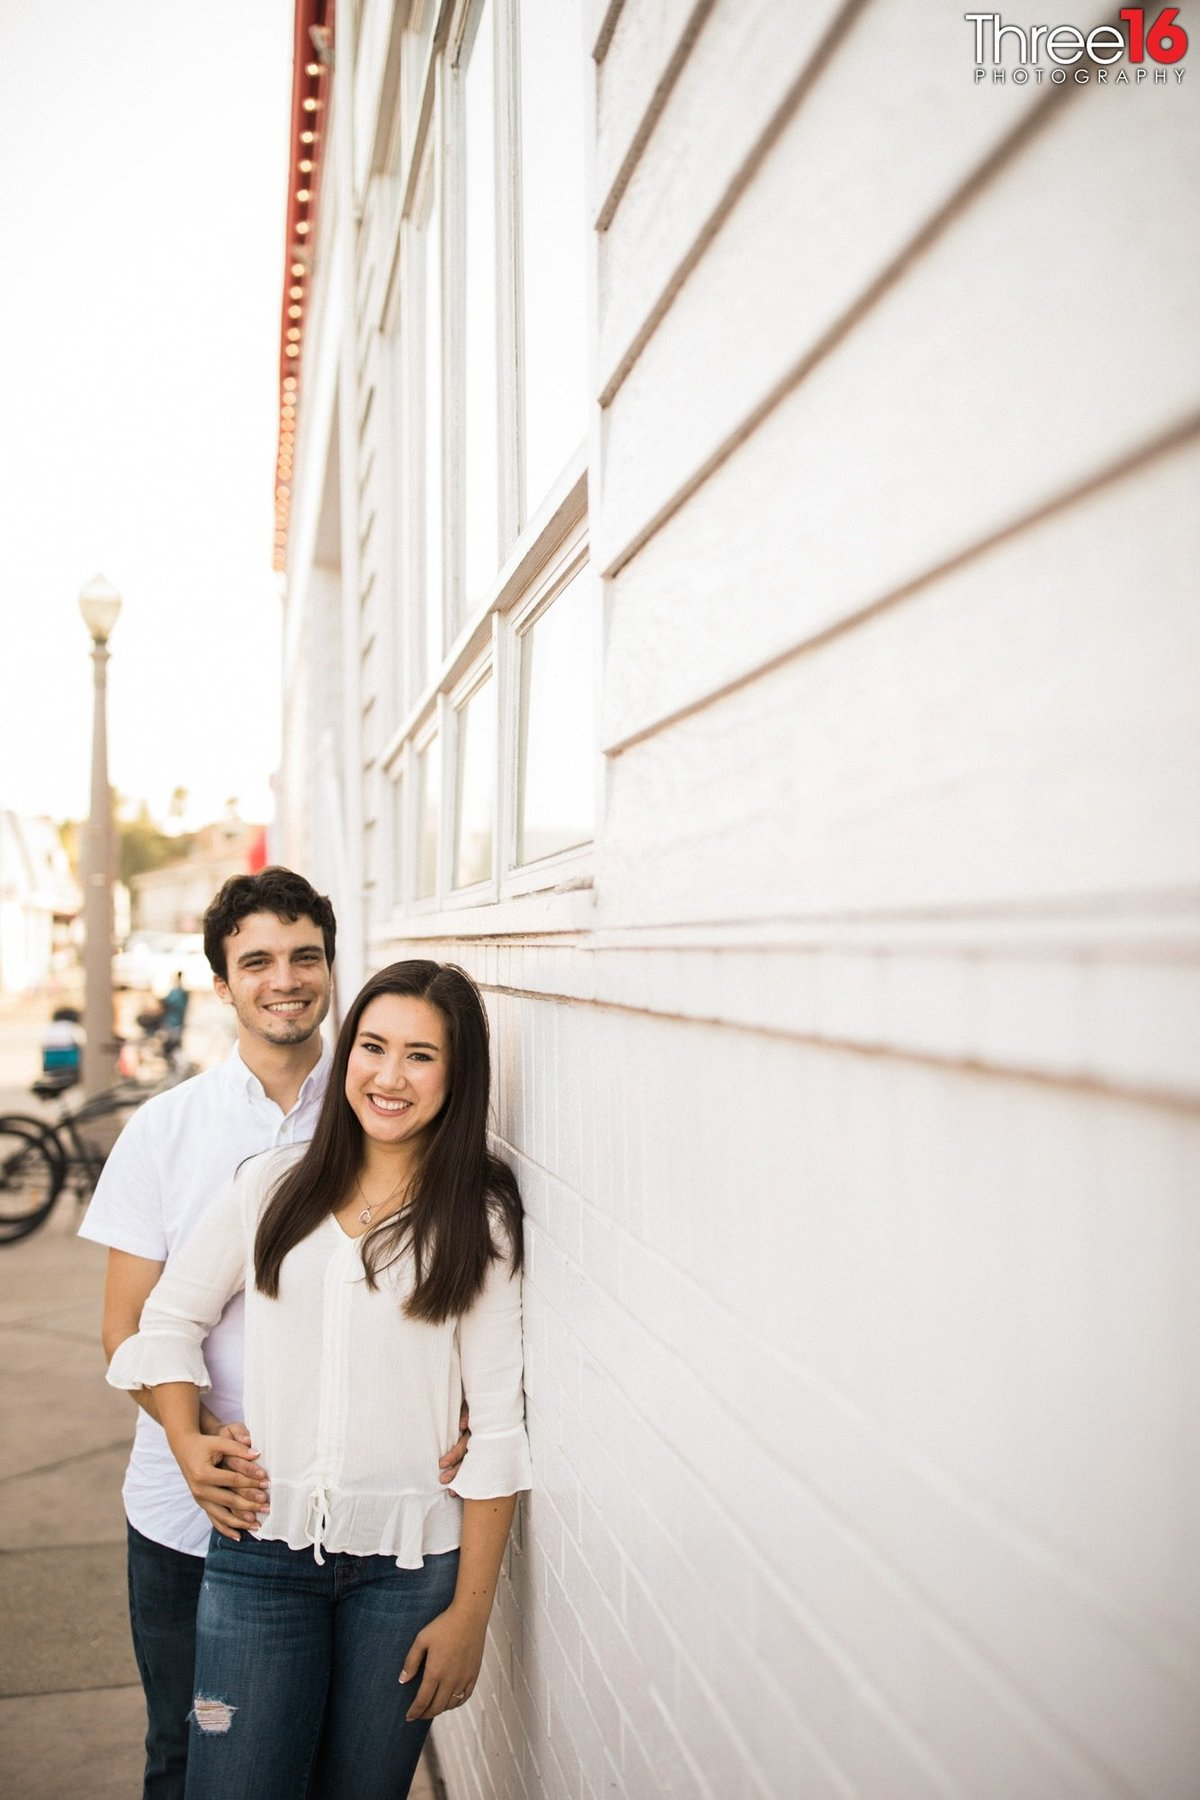 Balboa Fun Zone Engagement Photos Newport